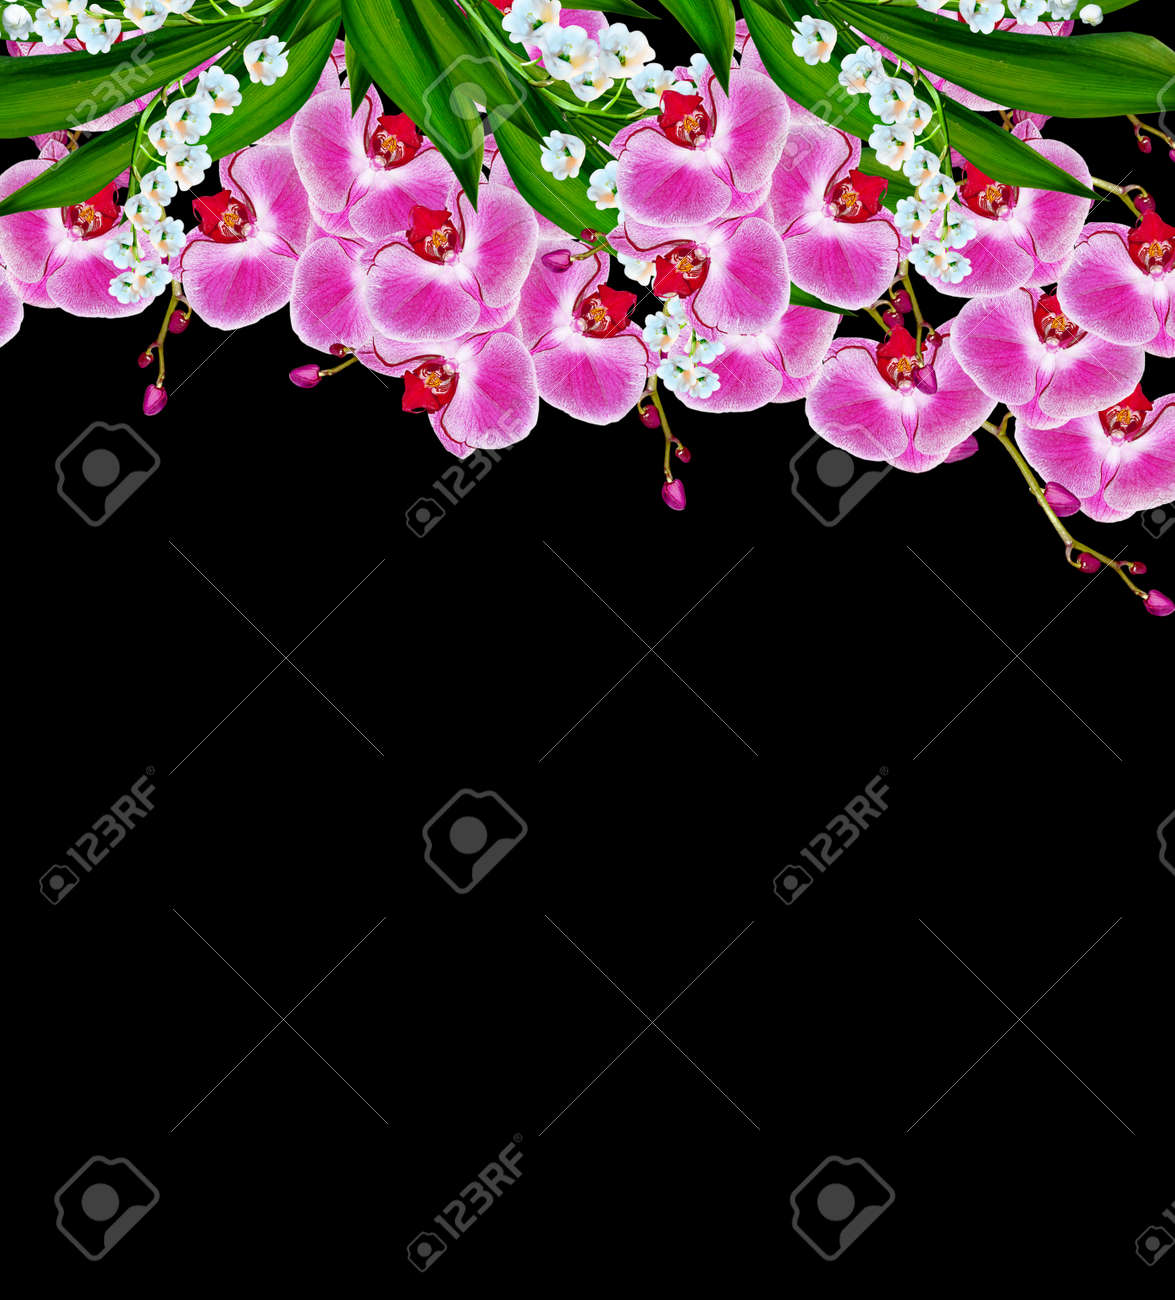 Flowers Orchids And Lilies Of The Valley Isolated On A Black Stock